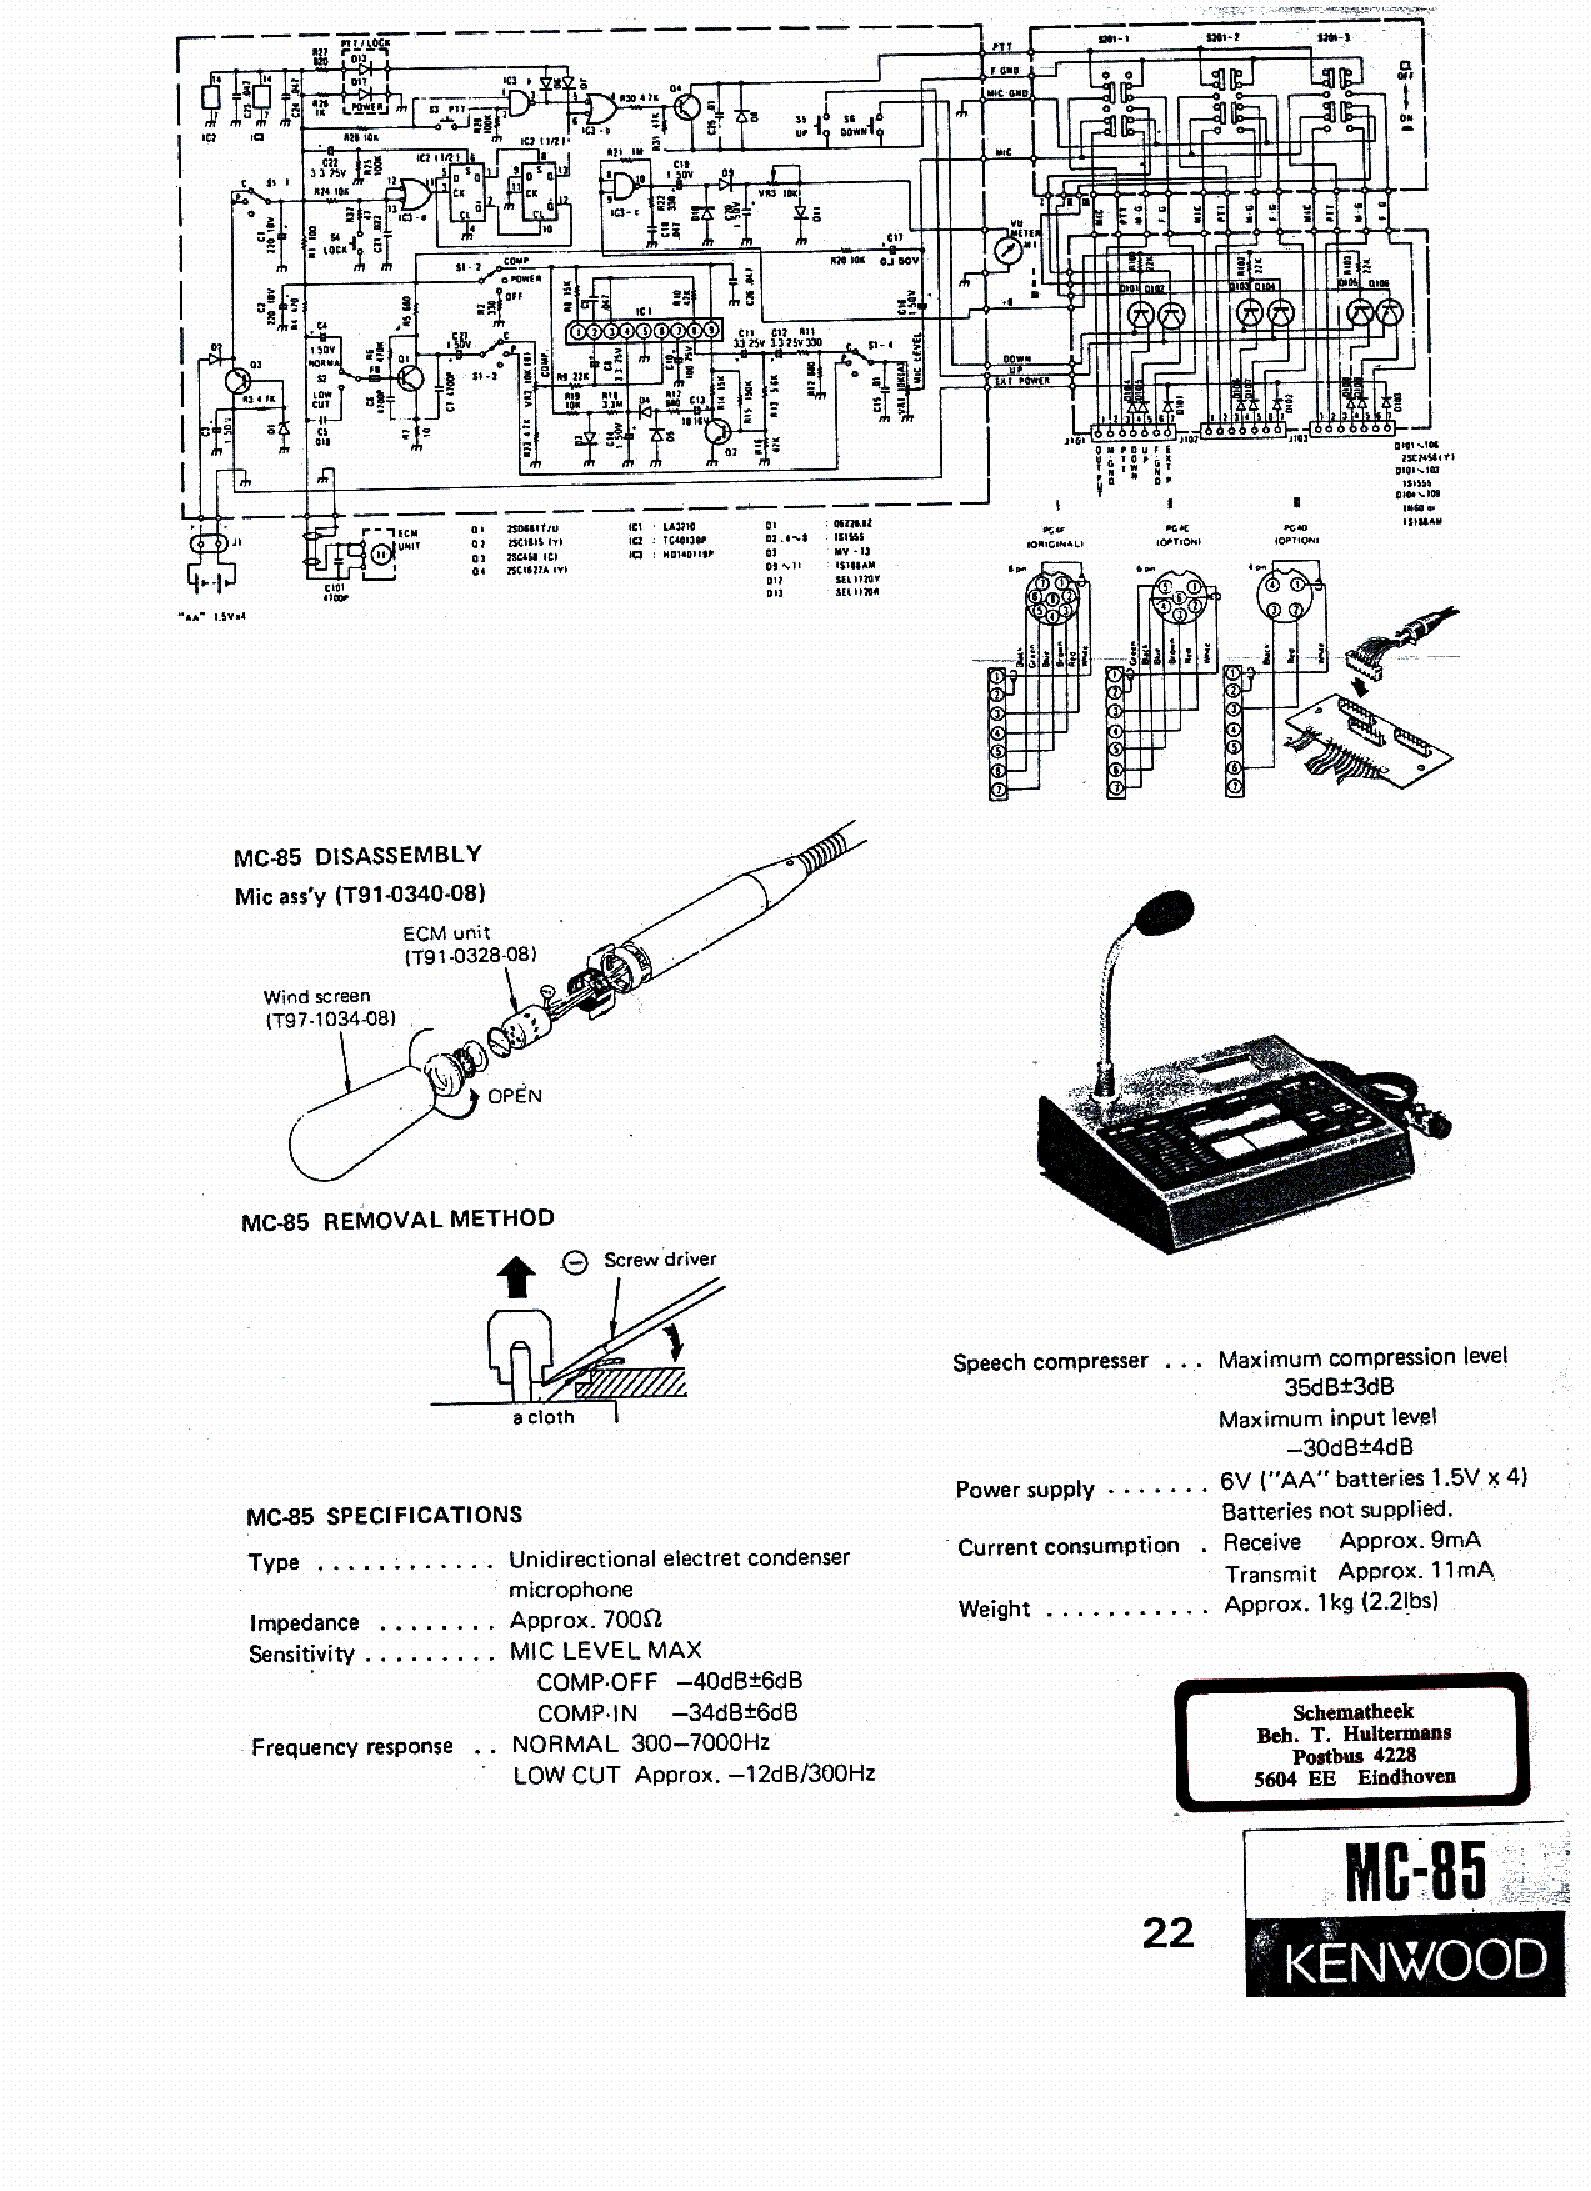 KENWOOD MC-85 SCH Service Manual download, schematics